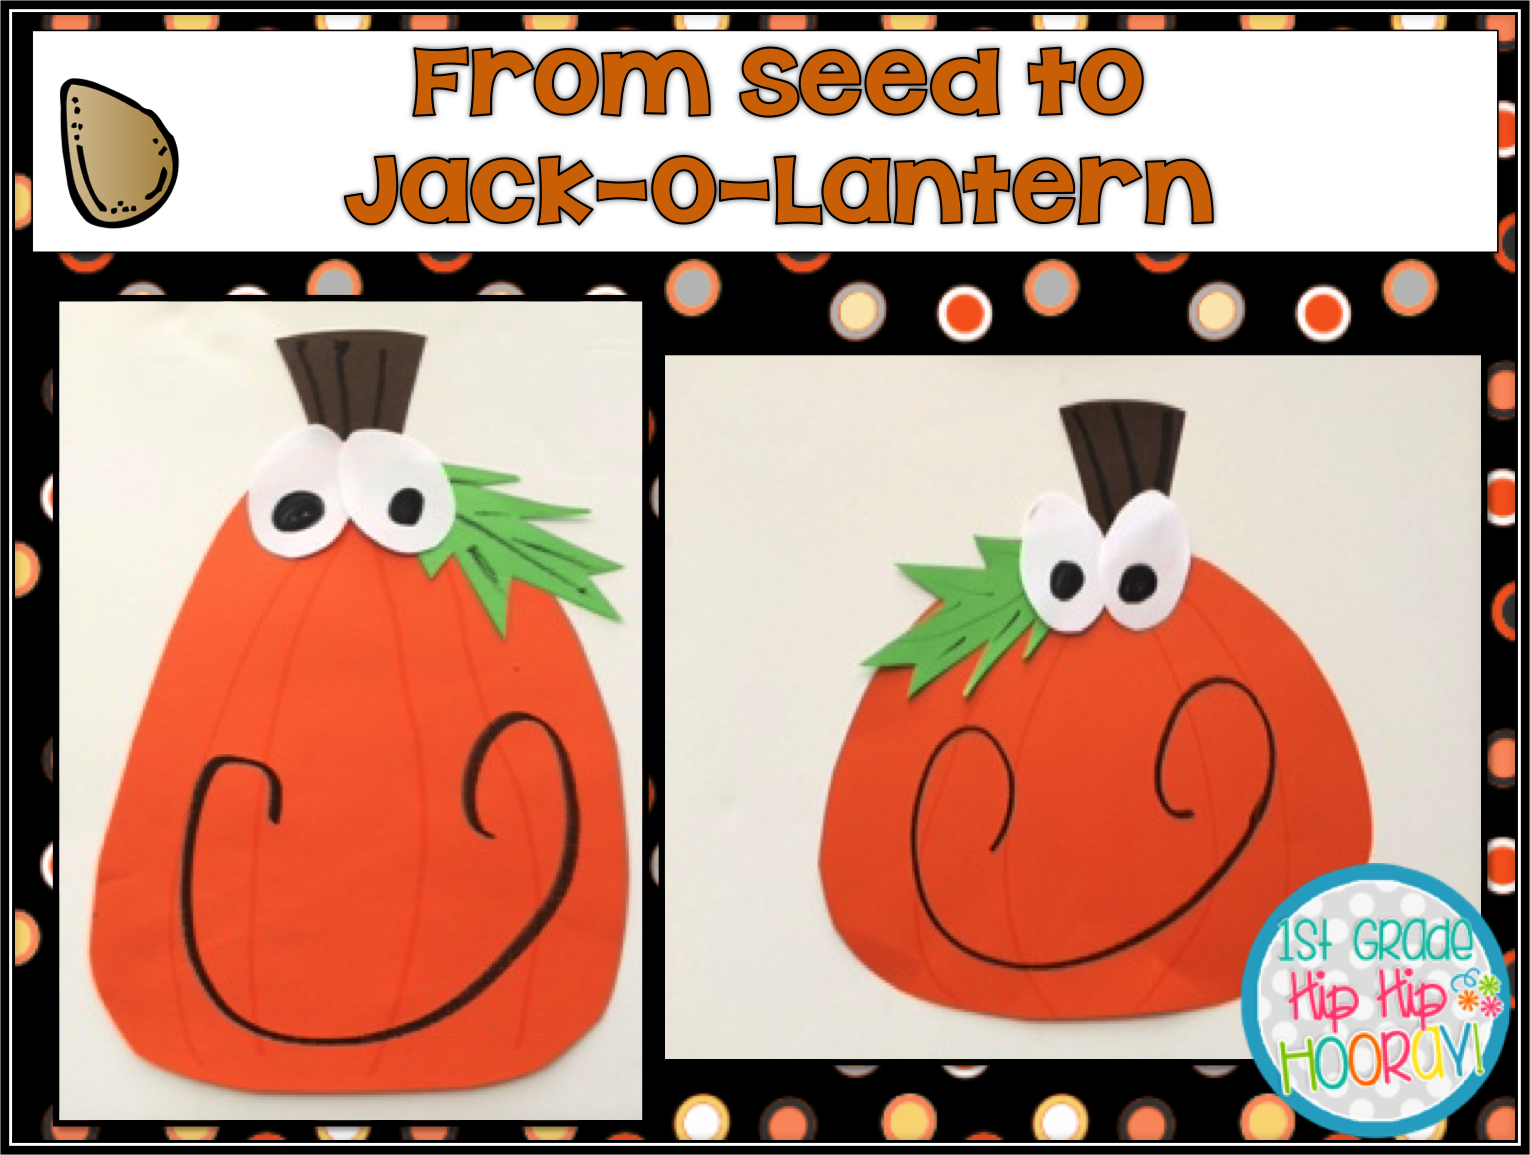 1st Grade Hip Hip Hooray From Seed To Jack O Lantern